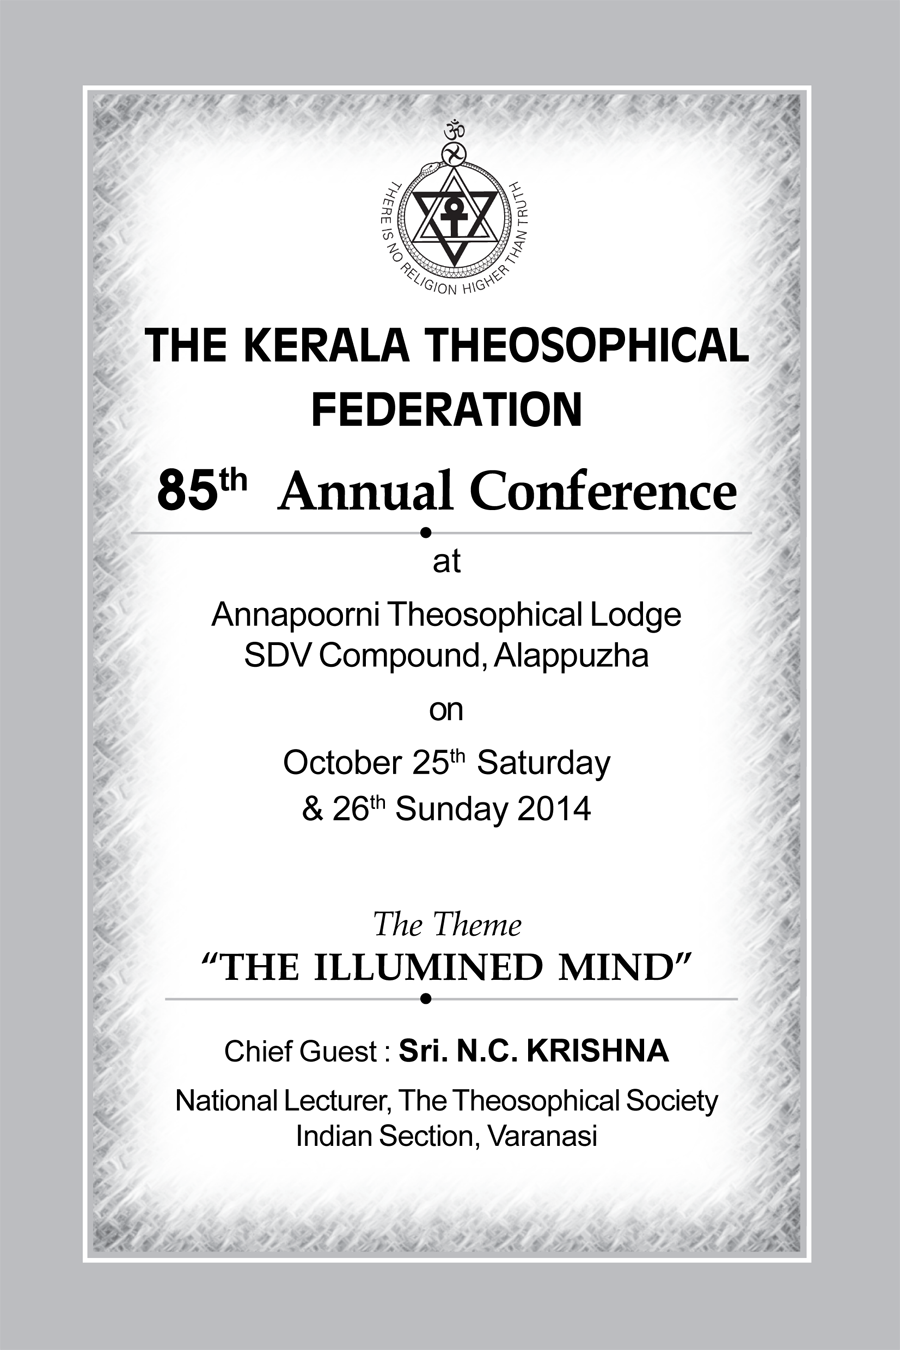 THE KERALA THEOSOPHICAL FEDERATION 85TH ANNUAL CONFERENCE